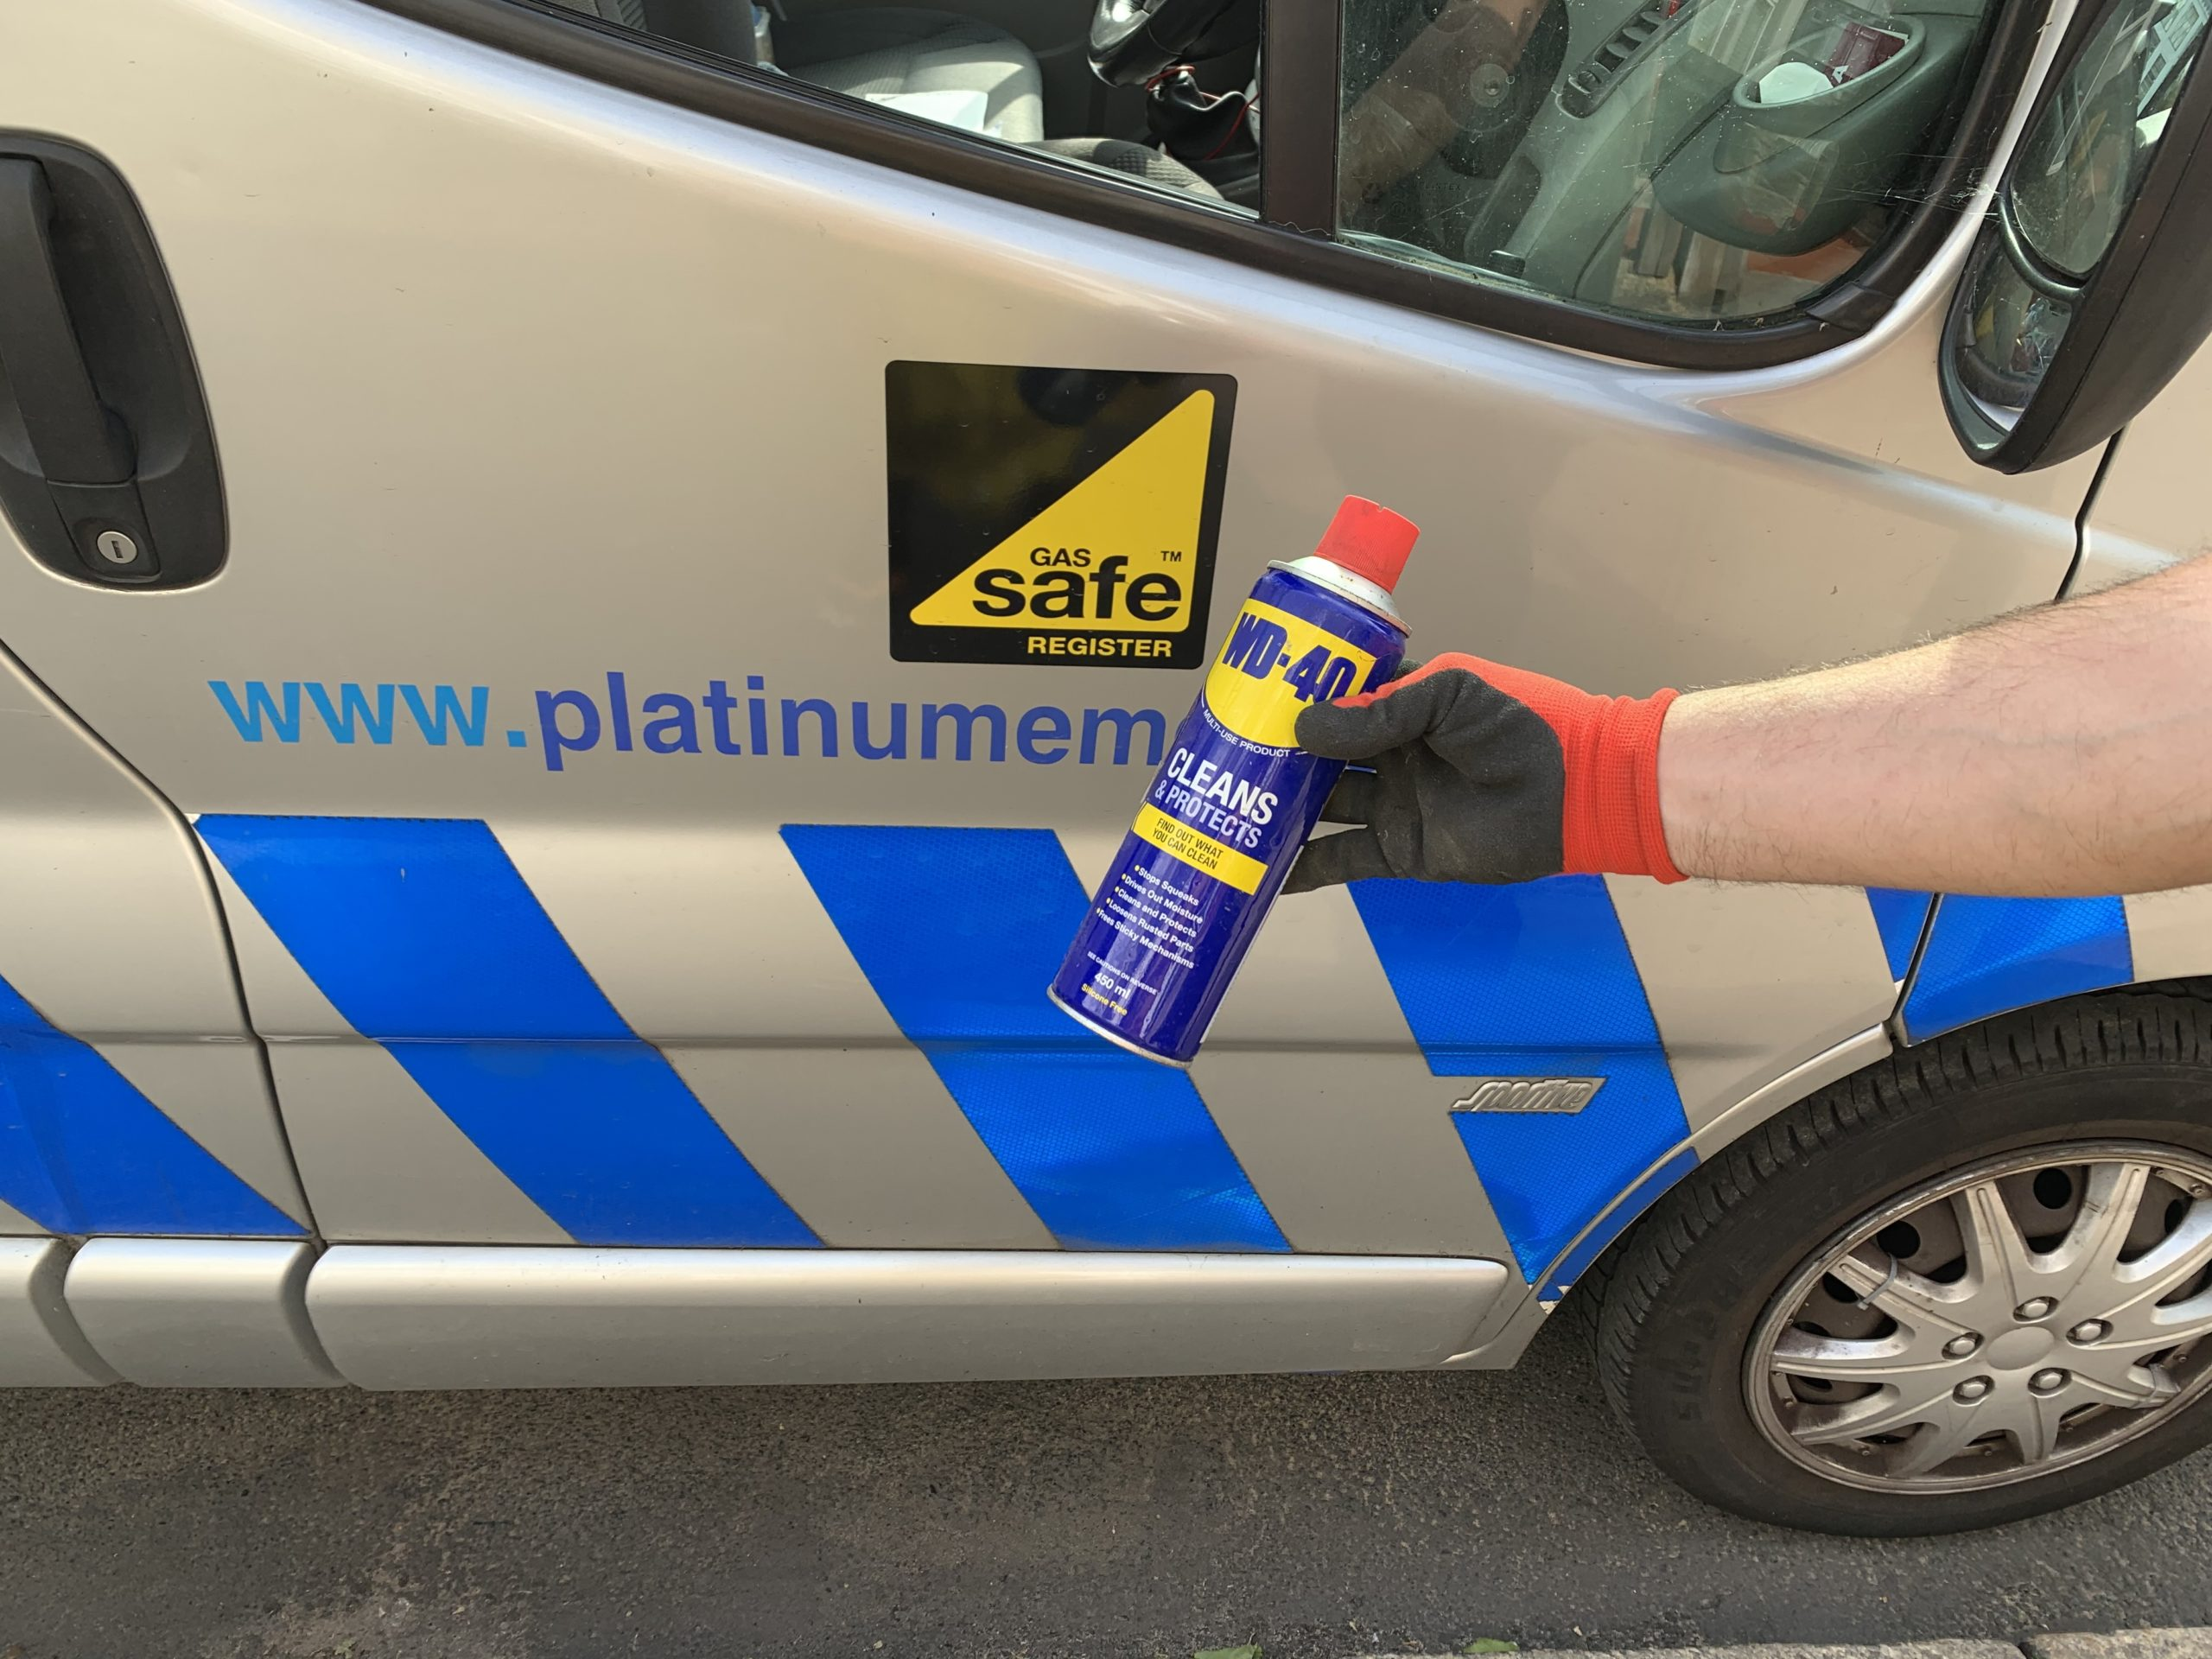 Photo with person holding can of WD40. In the background is website www.platinumemergency.com